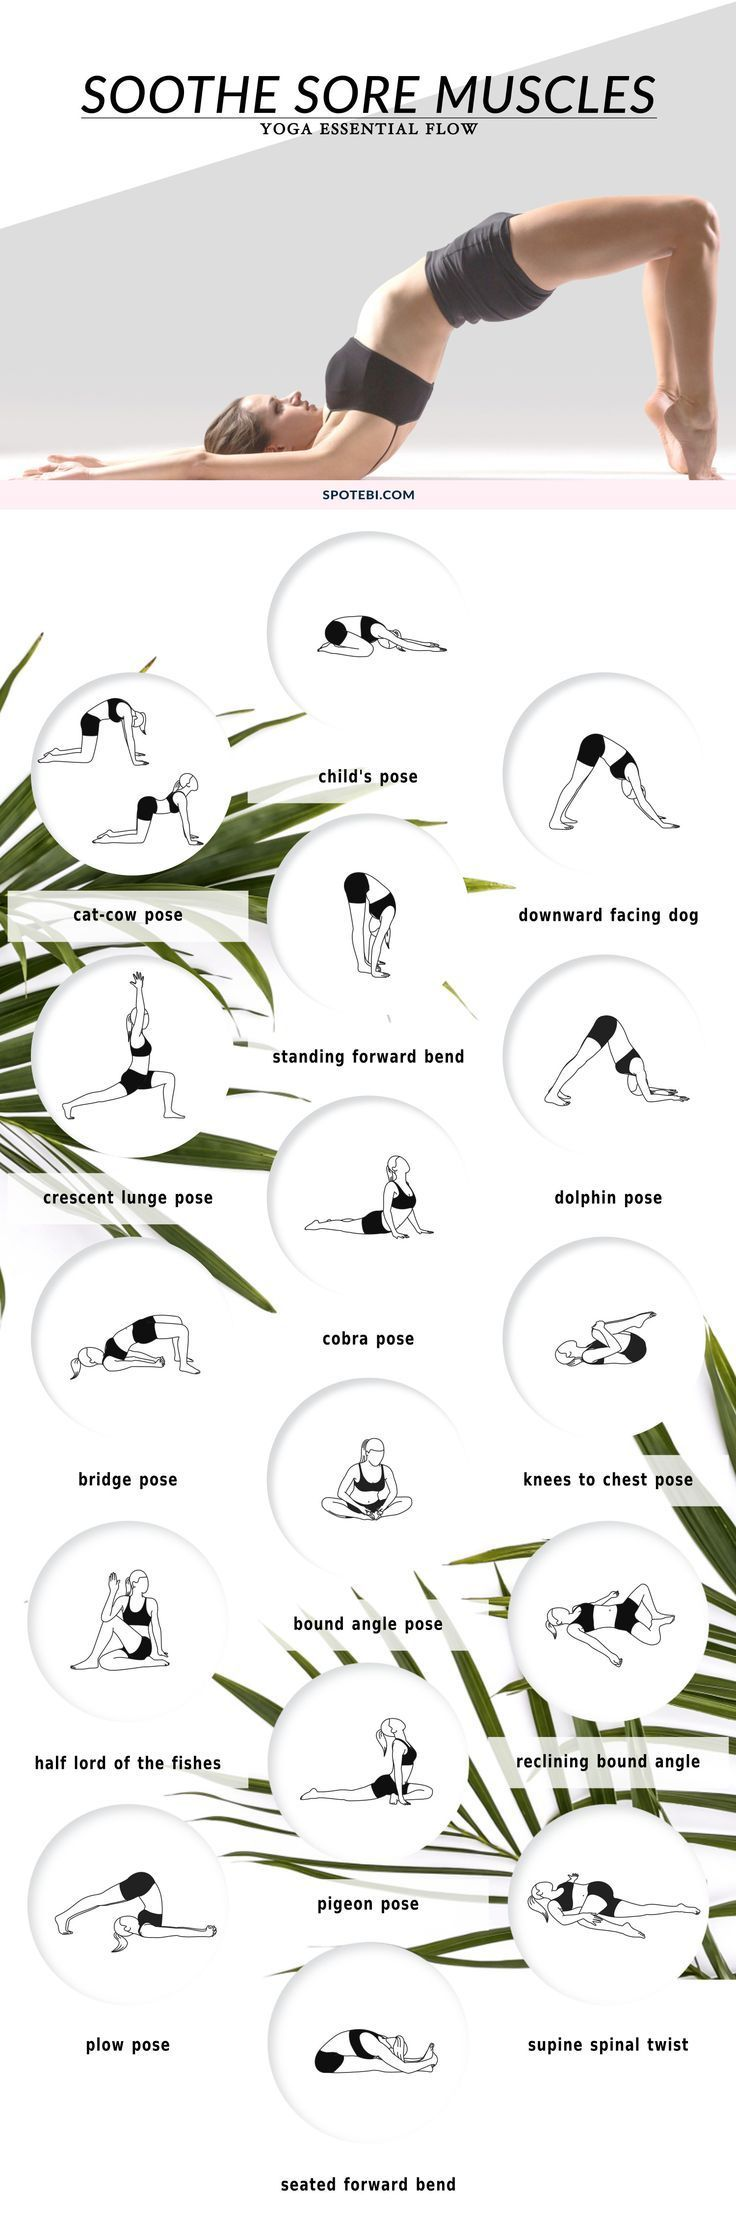 SOOTHE SORE MUSCLES YOGA ESSENTIAL FLOW